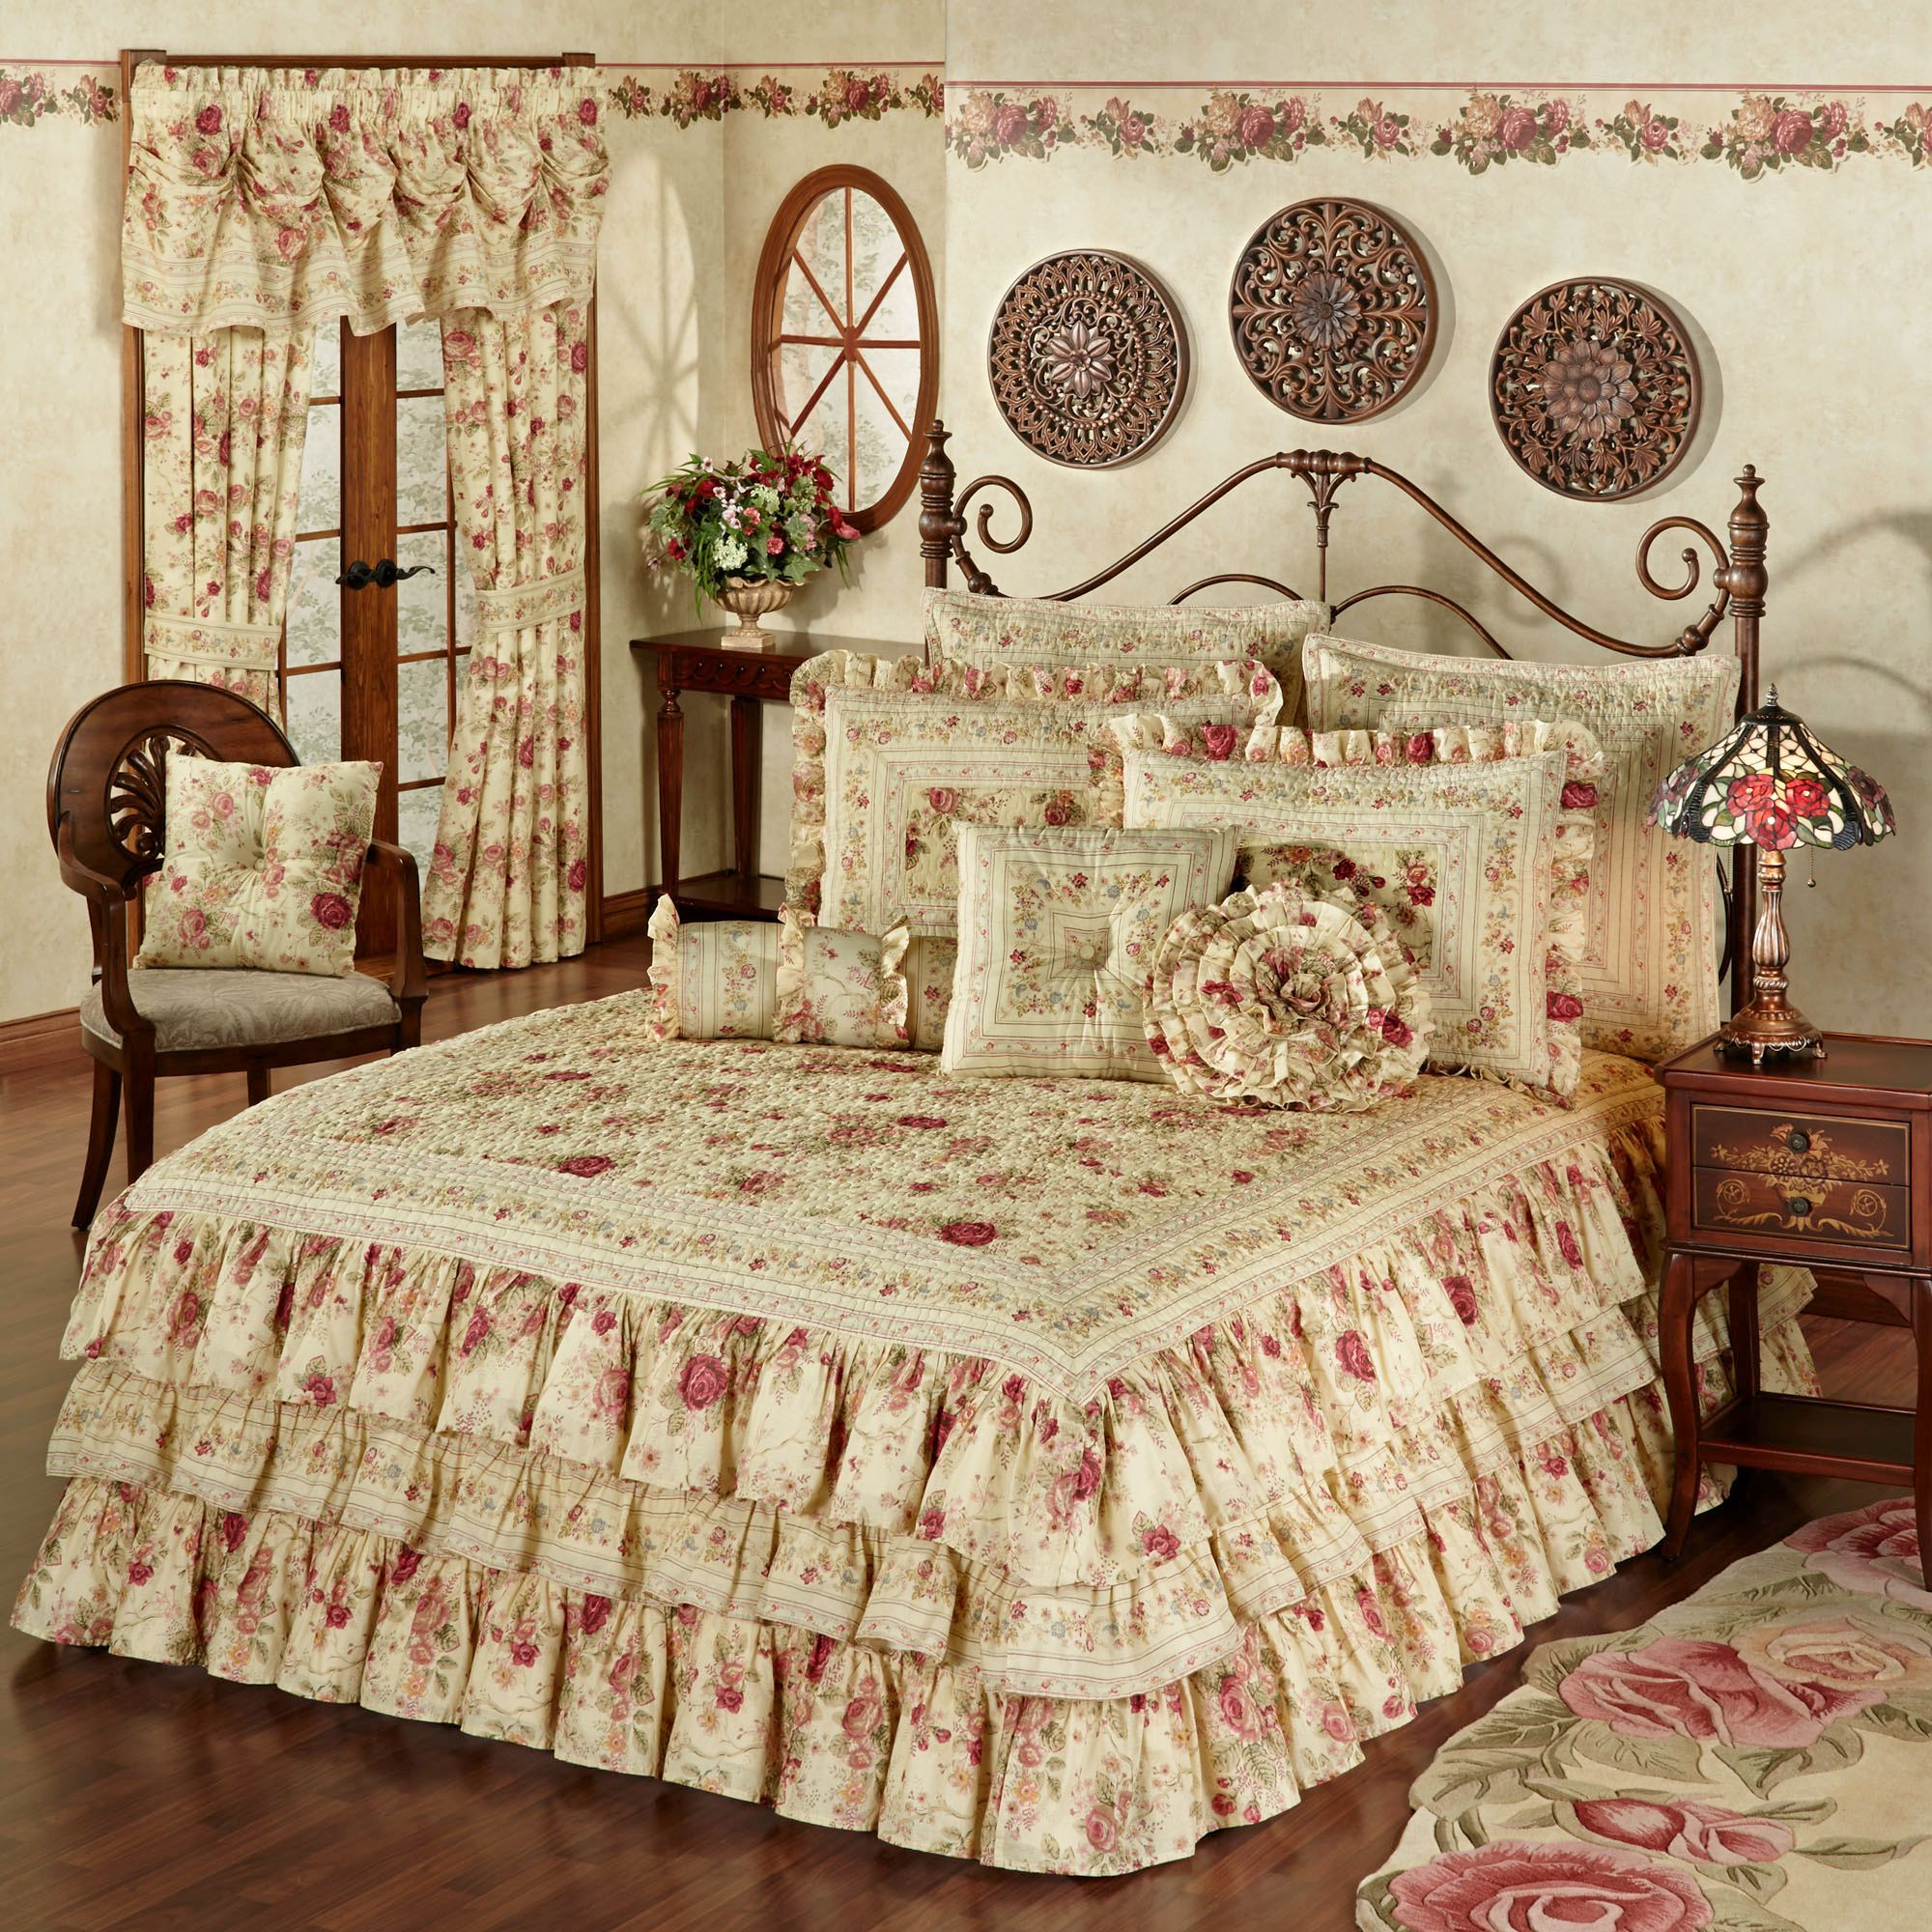 bedding grande of this melody bedspread i touch ruffled country love from floral king pin bedspreads class curtains curtain coral